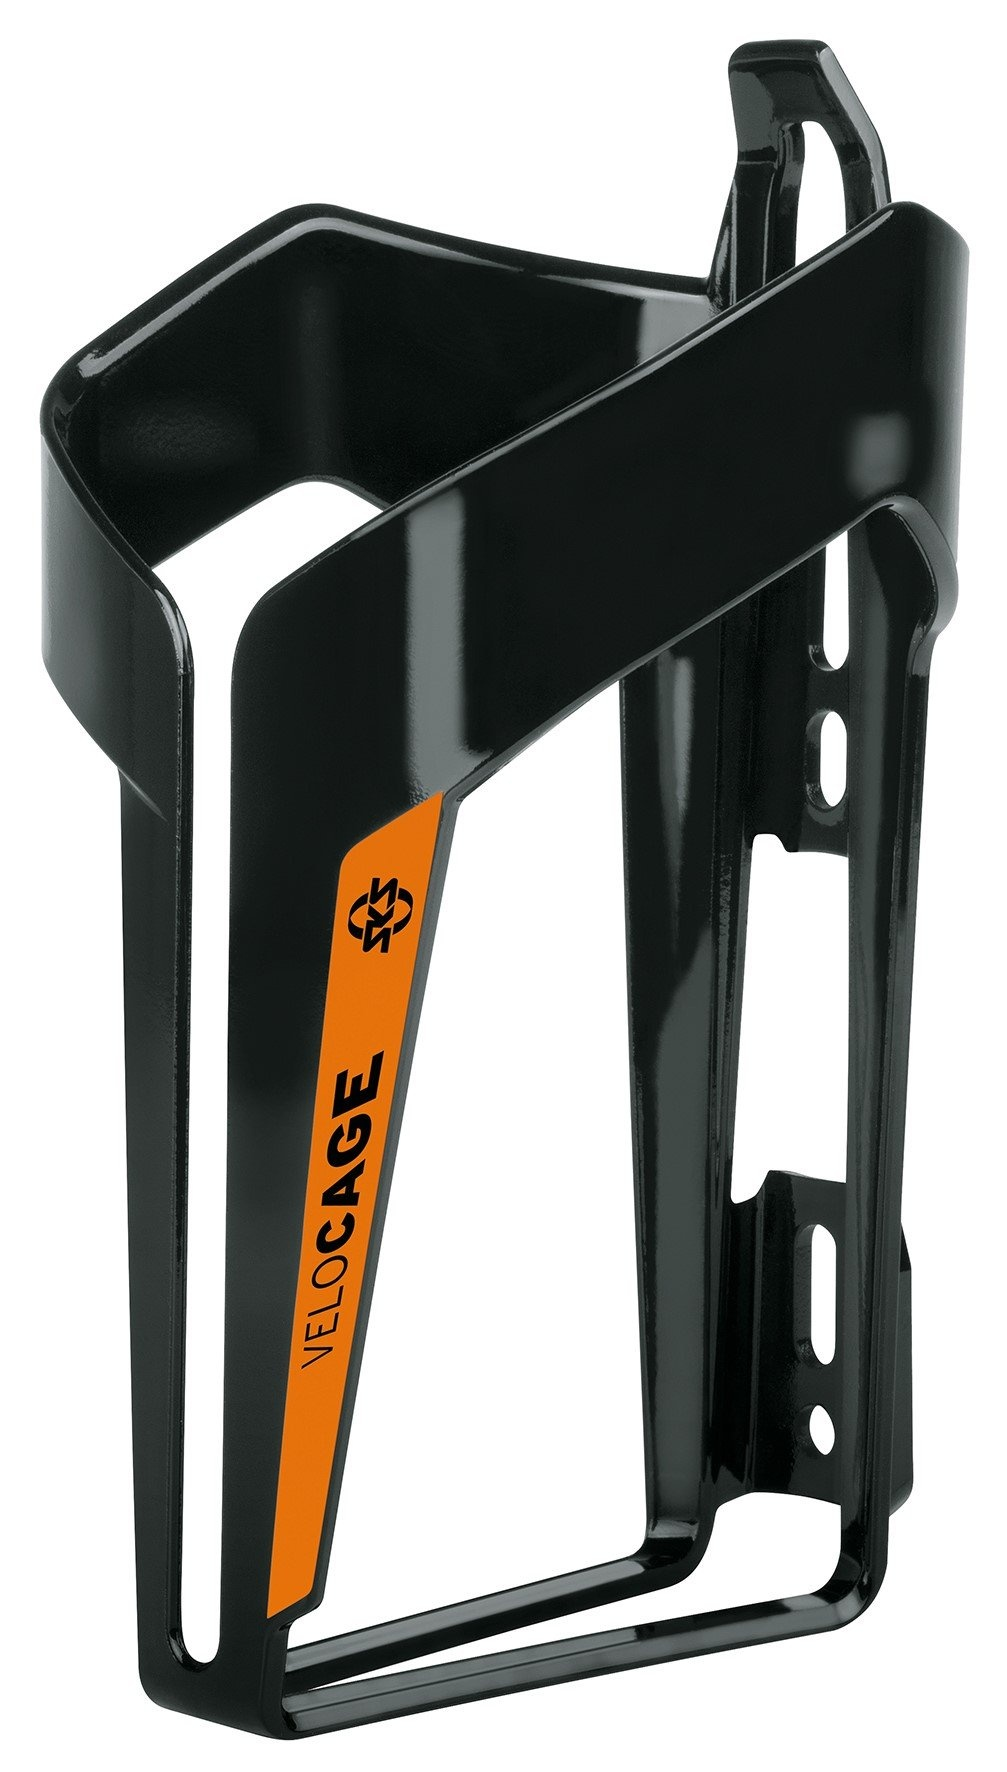 SKS Velocage flaskeholder - Sort/orange